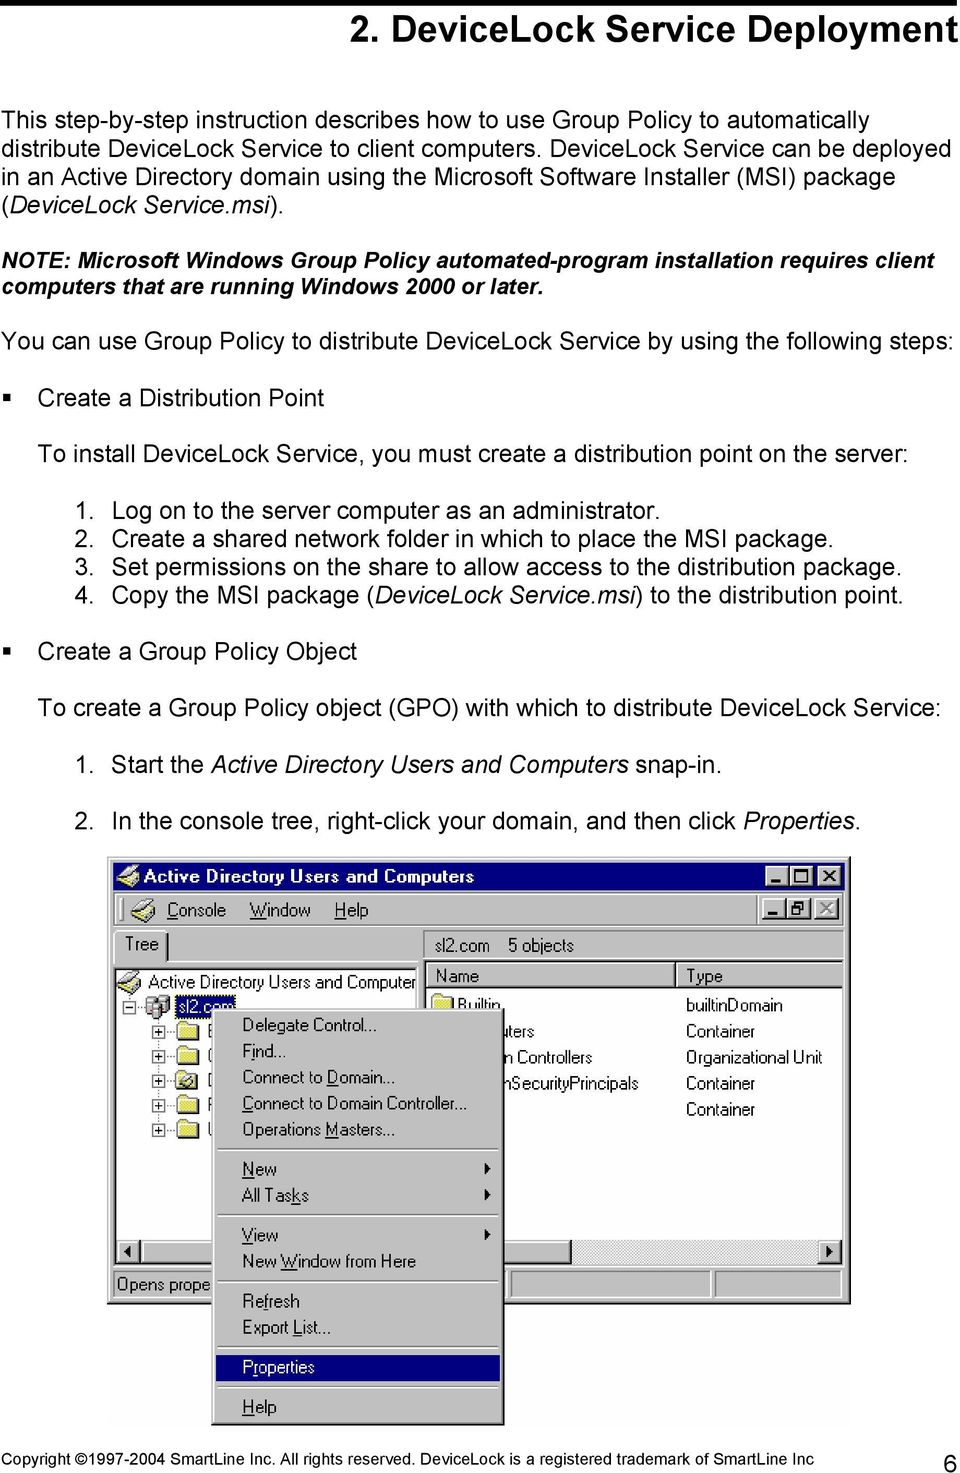 NOTE: Microsoft Windows Group Policy automated-program installation requires client computers that are running Windows 2000 or later.